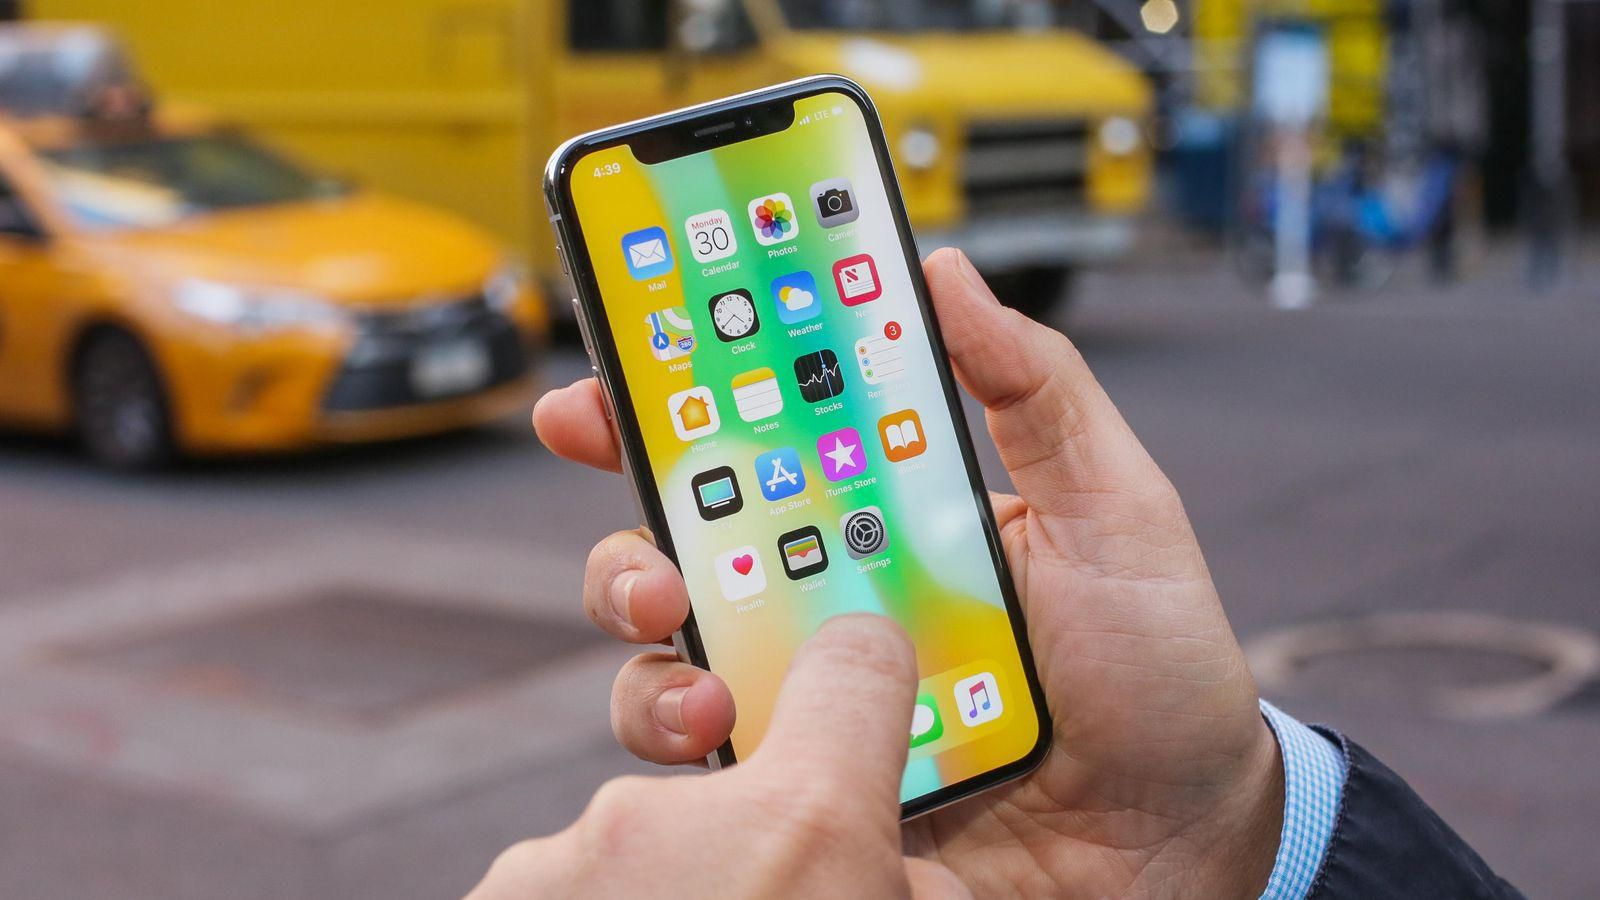 iphone x 64 gb cu 99 hinh anh 3